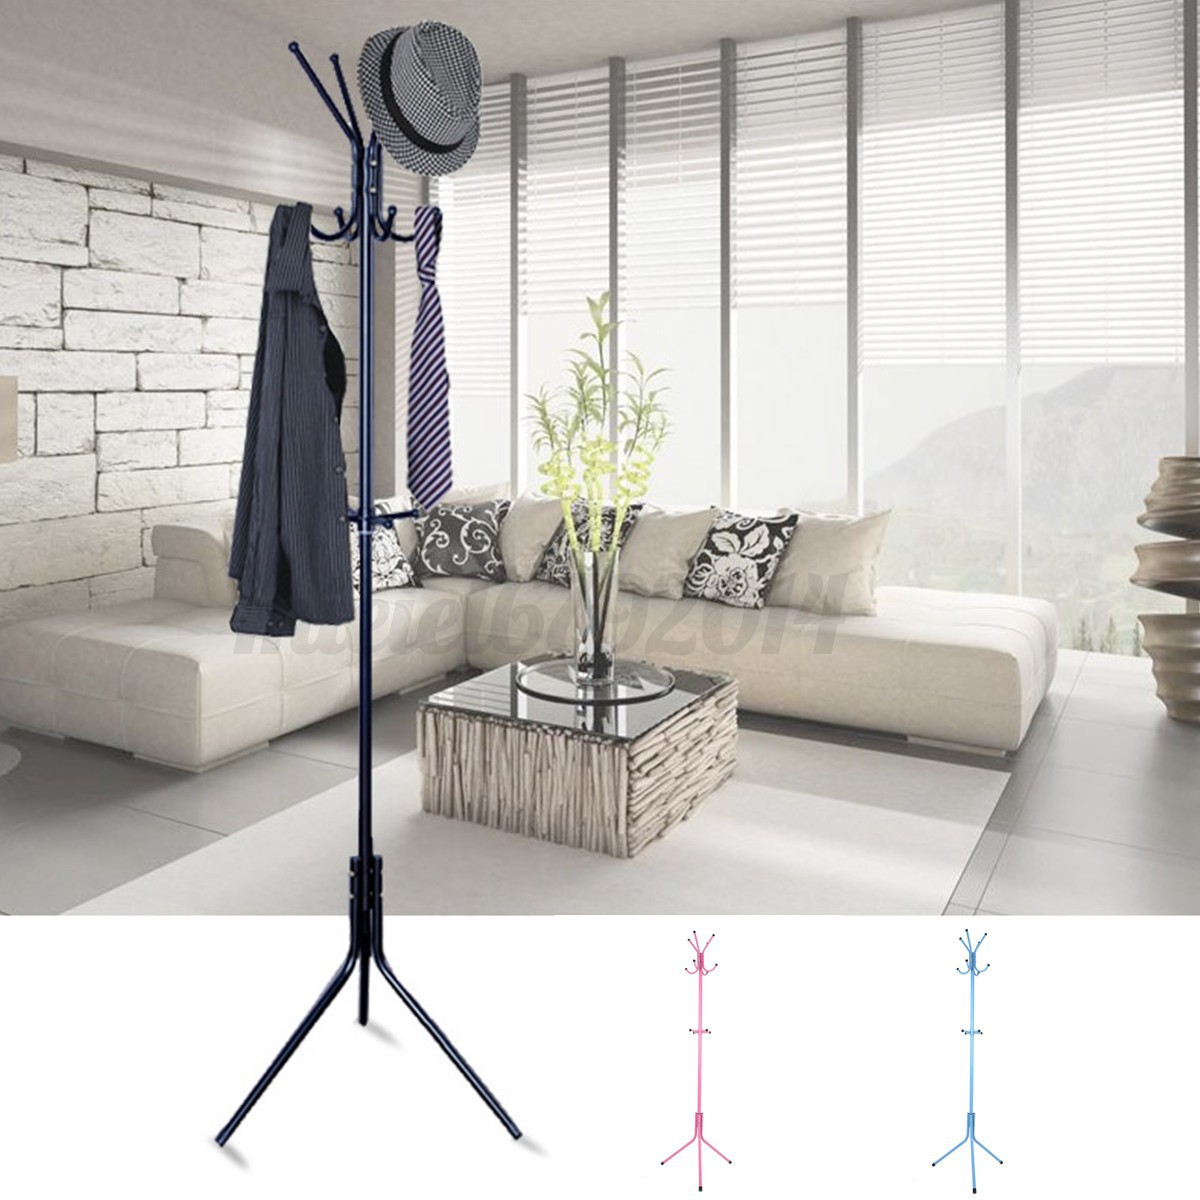 Hat Coat Umbrella Floor Stand Clothes Storage Rack Holder Hooks Office Hat